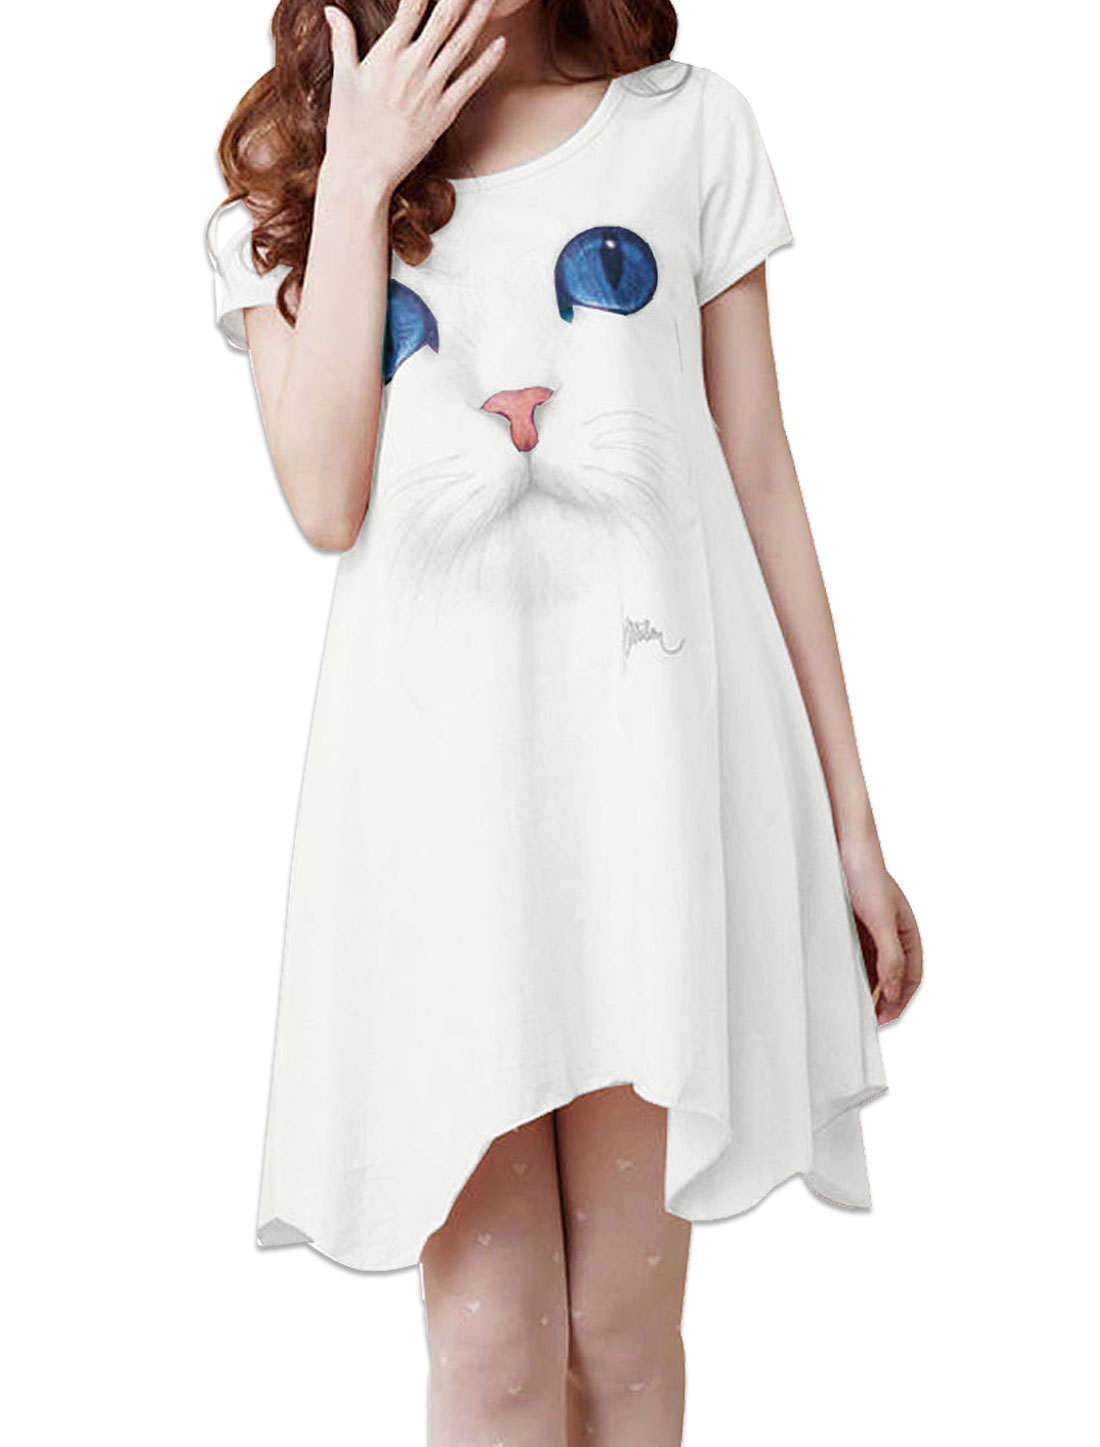 Lady Scoop Neck Short Sleeve Cat Pattern Casual White Mini Dress M